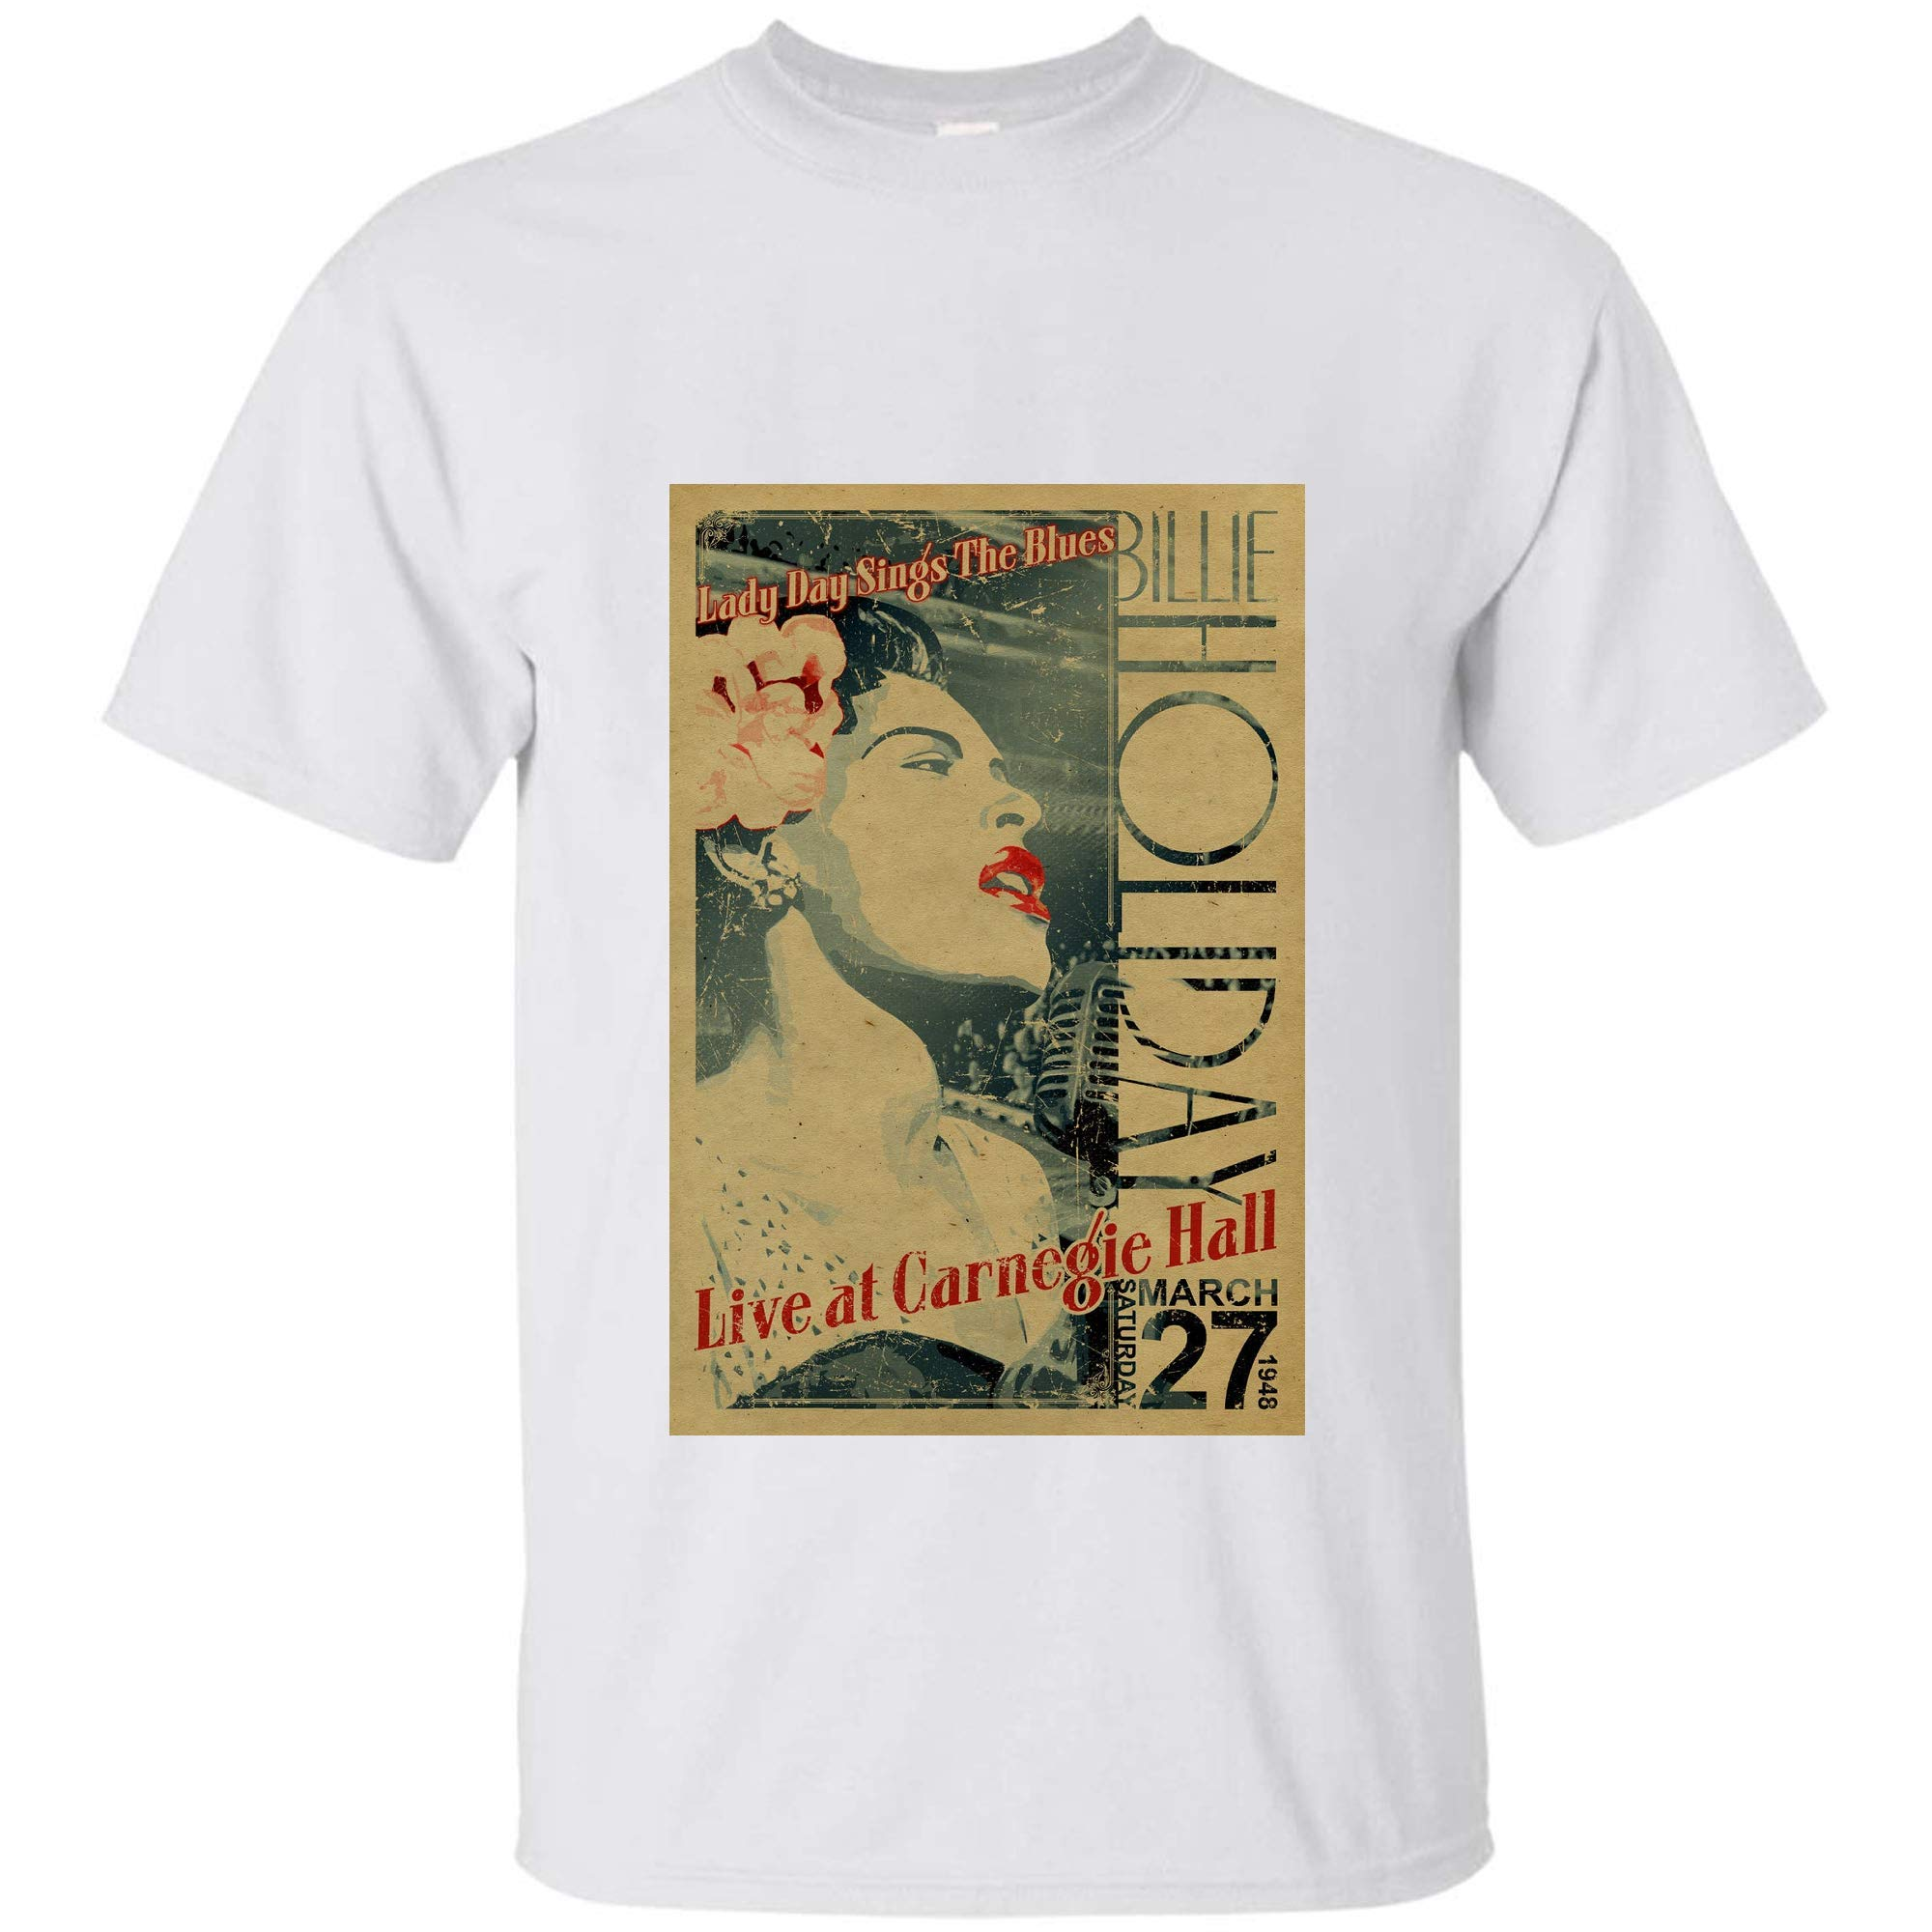 Billie Holiday Poster Lady Day Sings The Blues Live At Carnegie Hall T Shirt For M